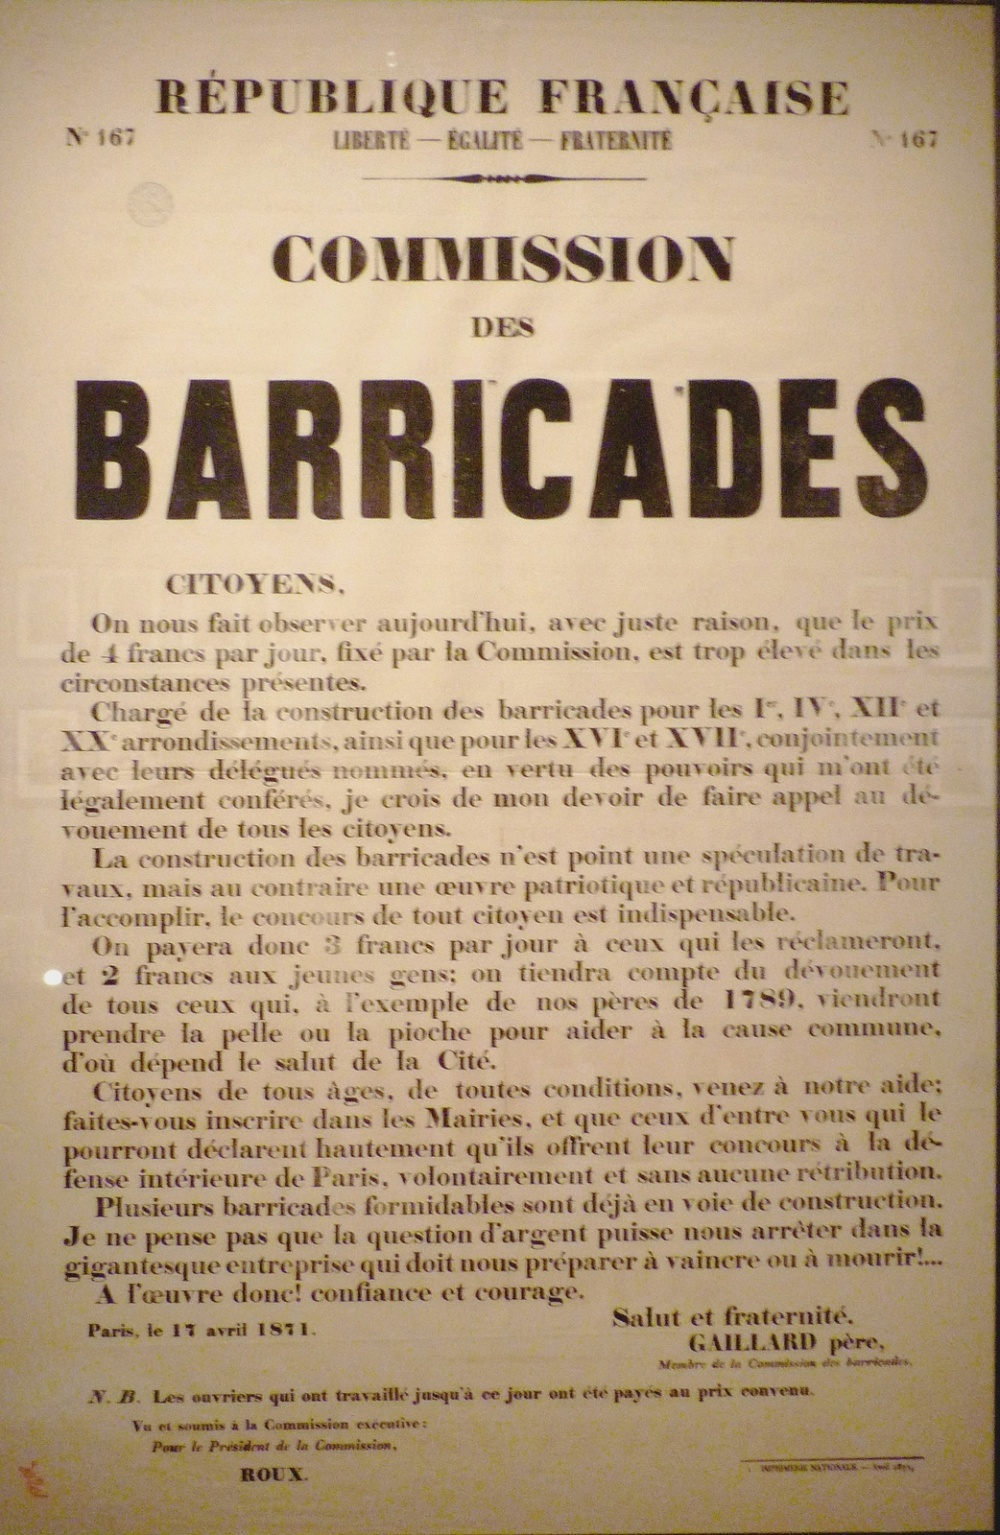 ob_57fa30_commune-de-paris-affiche-sur-le-travai